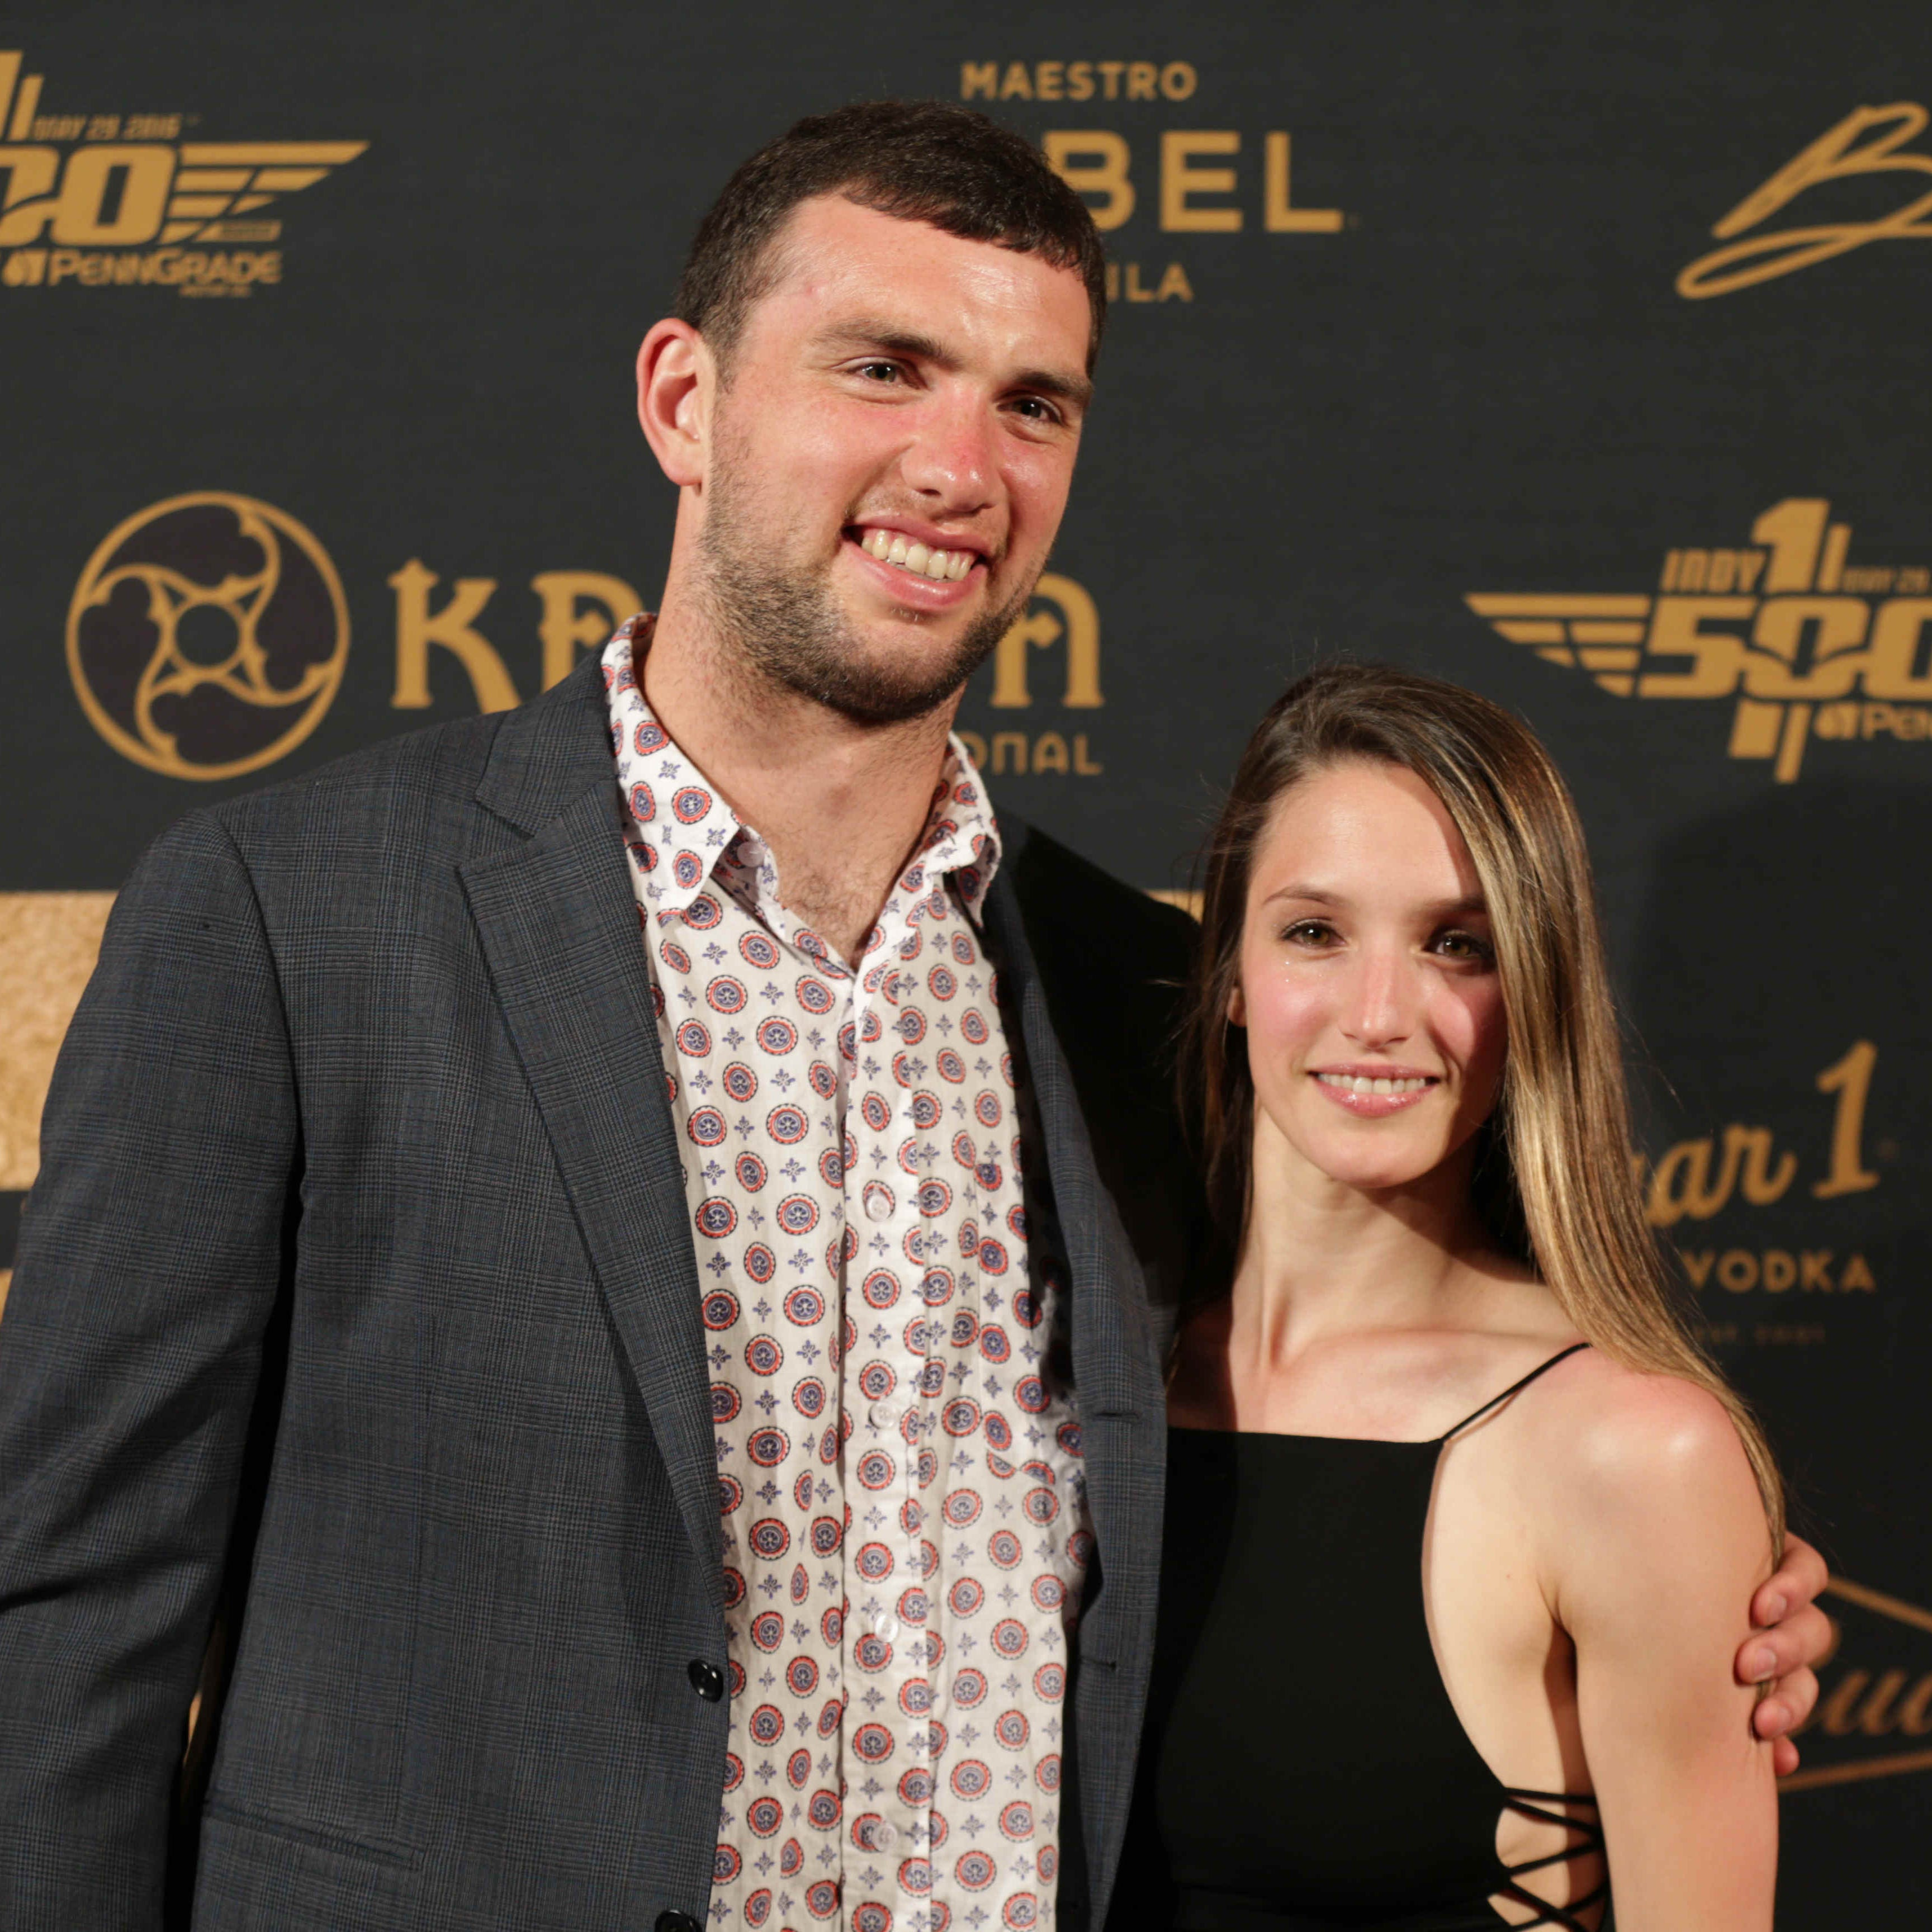 Andrew Luck marries girlfriend Nicole Pechanec in Prague wedding